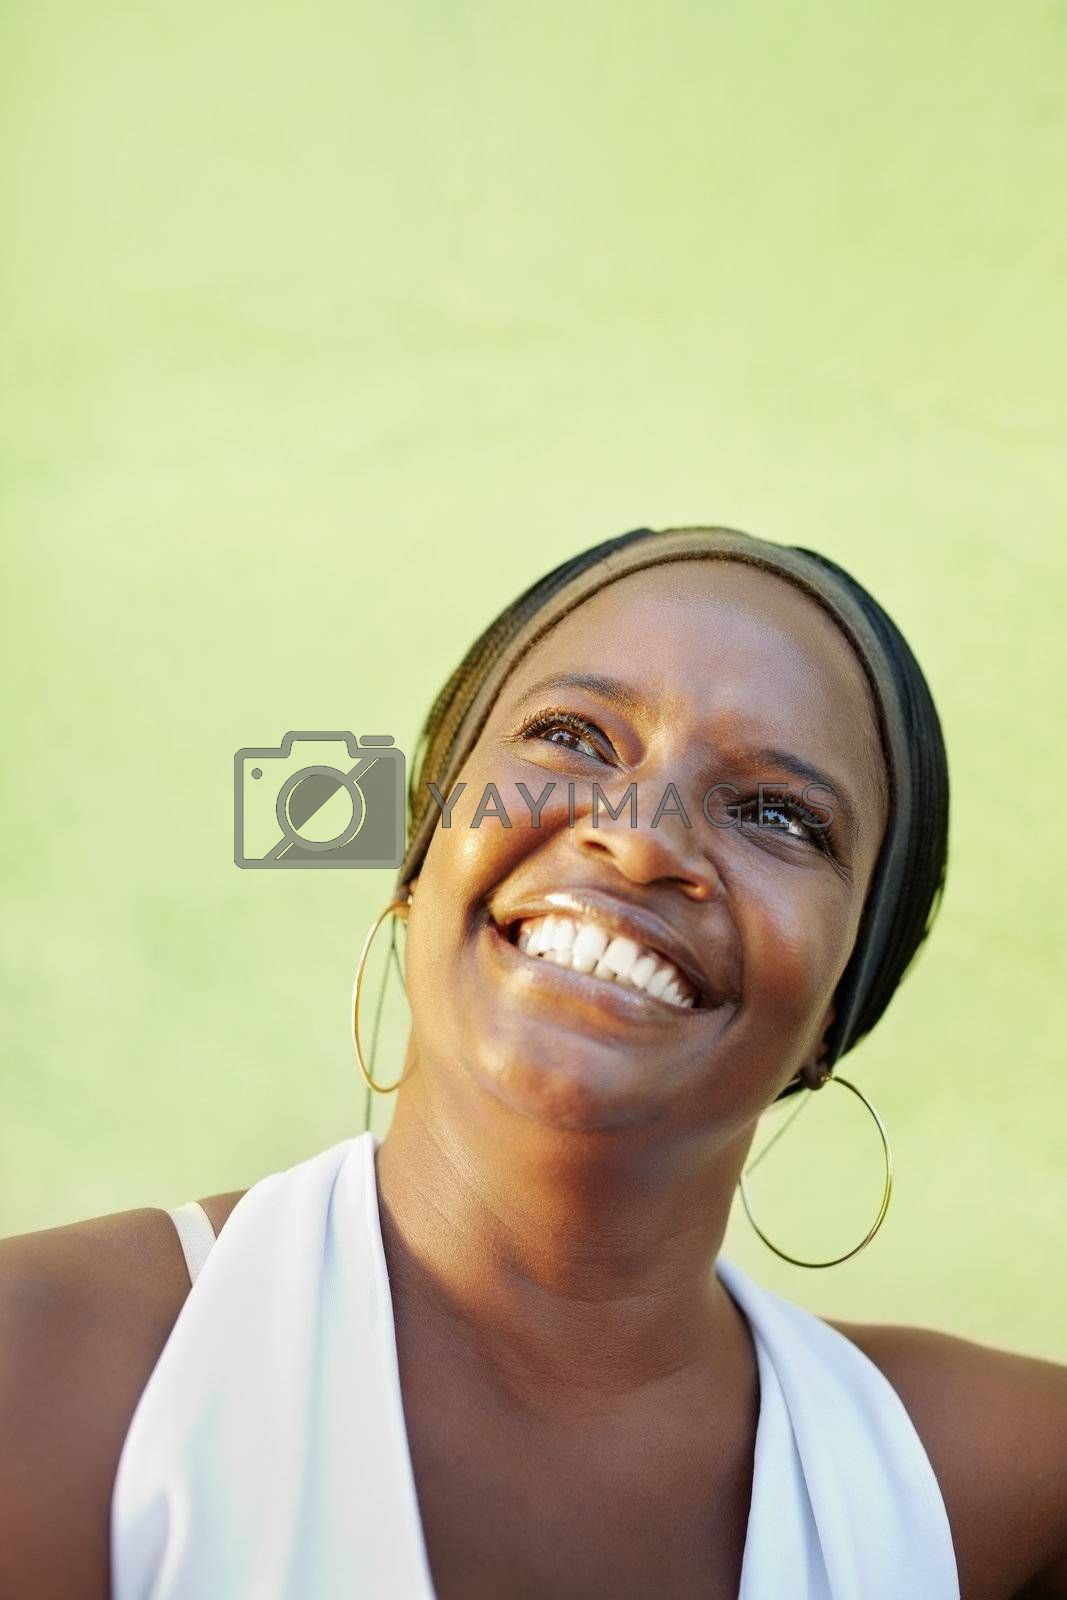 black woman with white shirt smiling  by diego_cervo